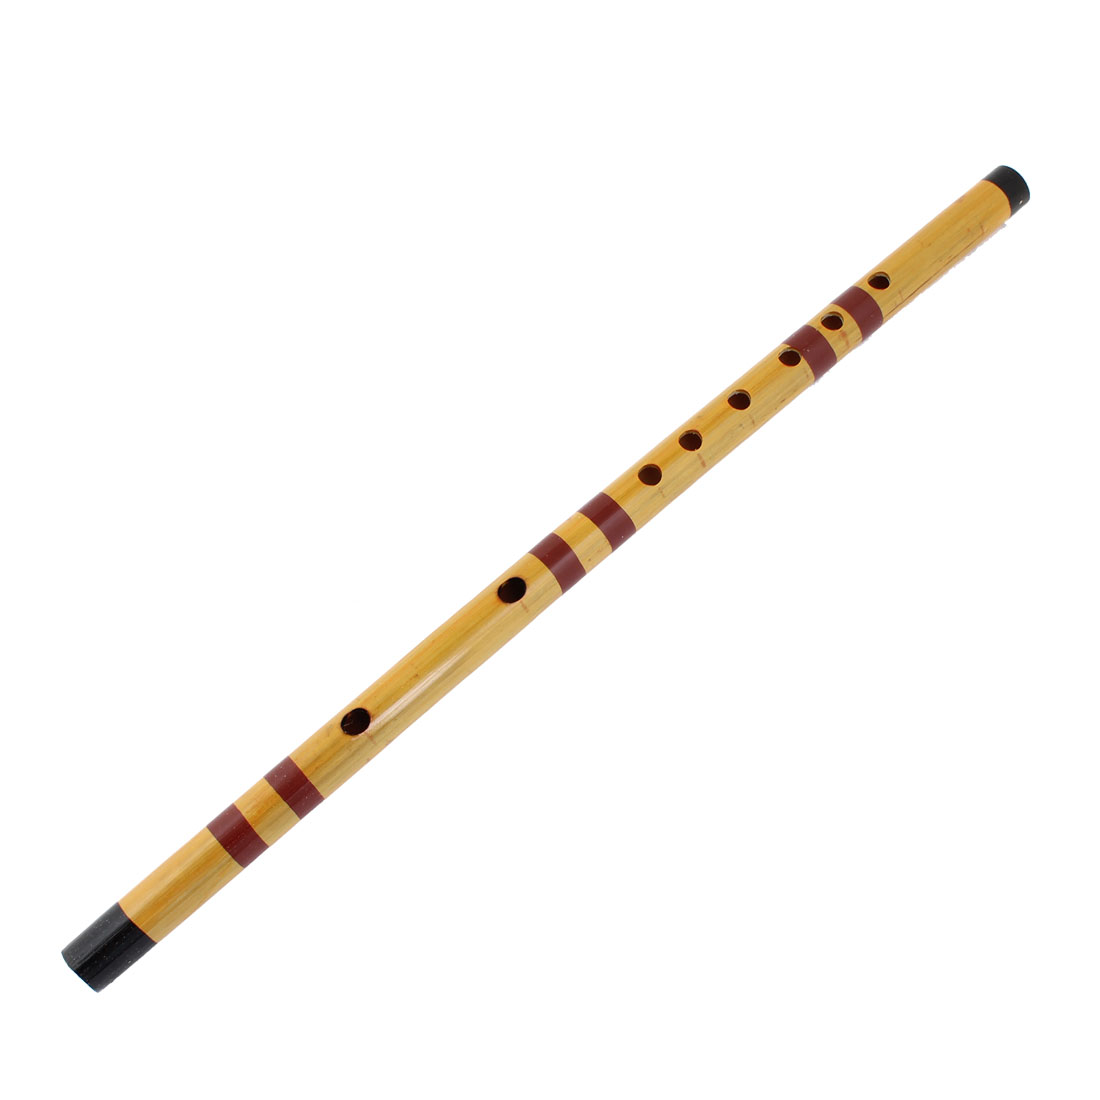 Black Red Light Yellow Alto F Dizi 8 Holes Chinese Bamboo Flute 17.3""